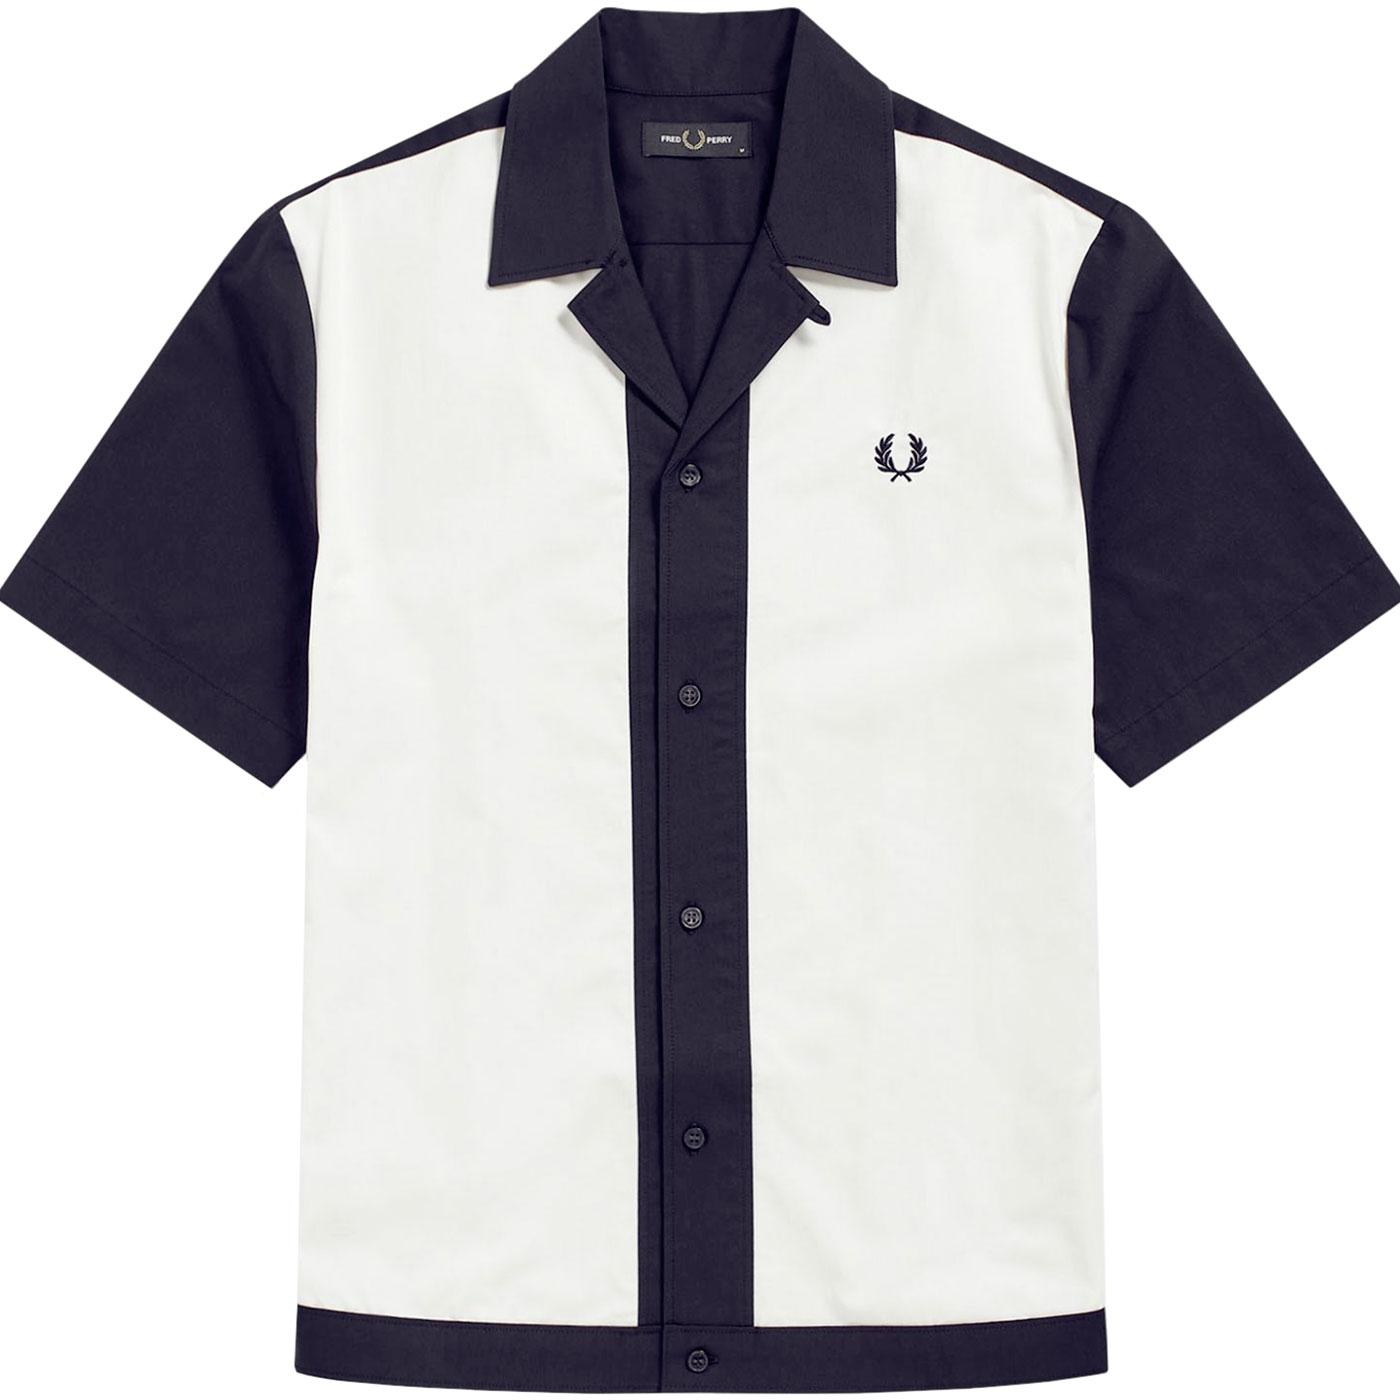 FRED PERRY Men's Retro 50's Panelled Bowling Shirt